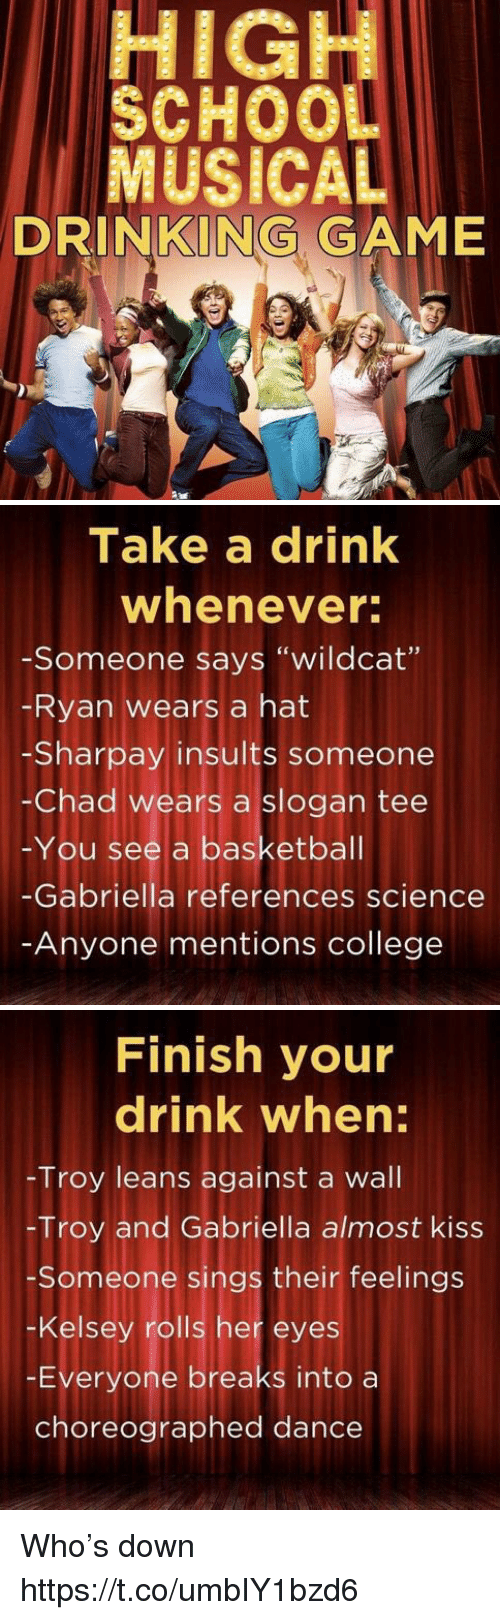 """Chads: HIGH  SCHOO  MUSICAL  DRINKING GAME   Take a drink  whenever  -Someone says """"wildcat""""  Ryan wears a hat  -Sharpay insults someone  -Chad wears a slogan tee  -You see a basketbal  -Gabriella references science  Anyone mentions college   Finish your  drink when:  Troy leans against a wall  -Troy and Gabriella almost kiss  Someone sings their feelings  -Kelsey rolls her eyes  -Everyone breaks into a  choreographed dance Who's down https://t.co/umbIY1bzd6"""